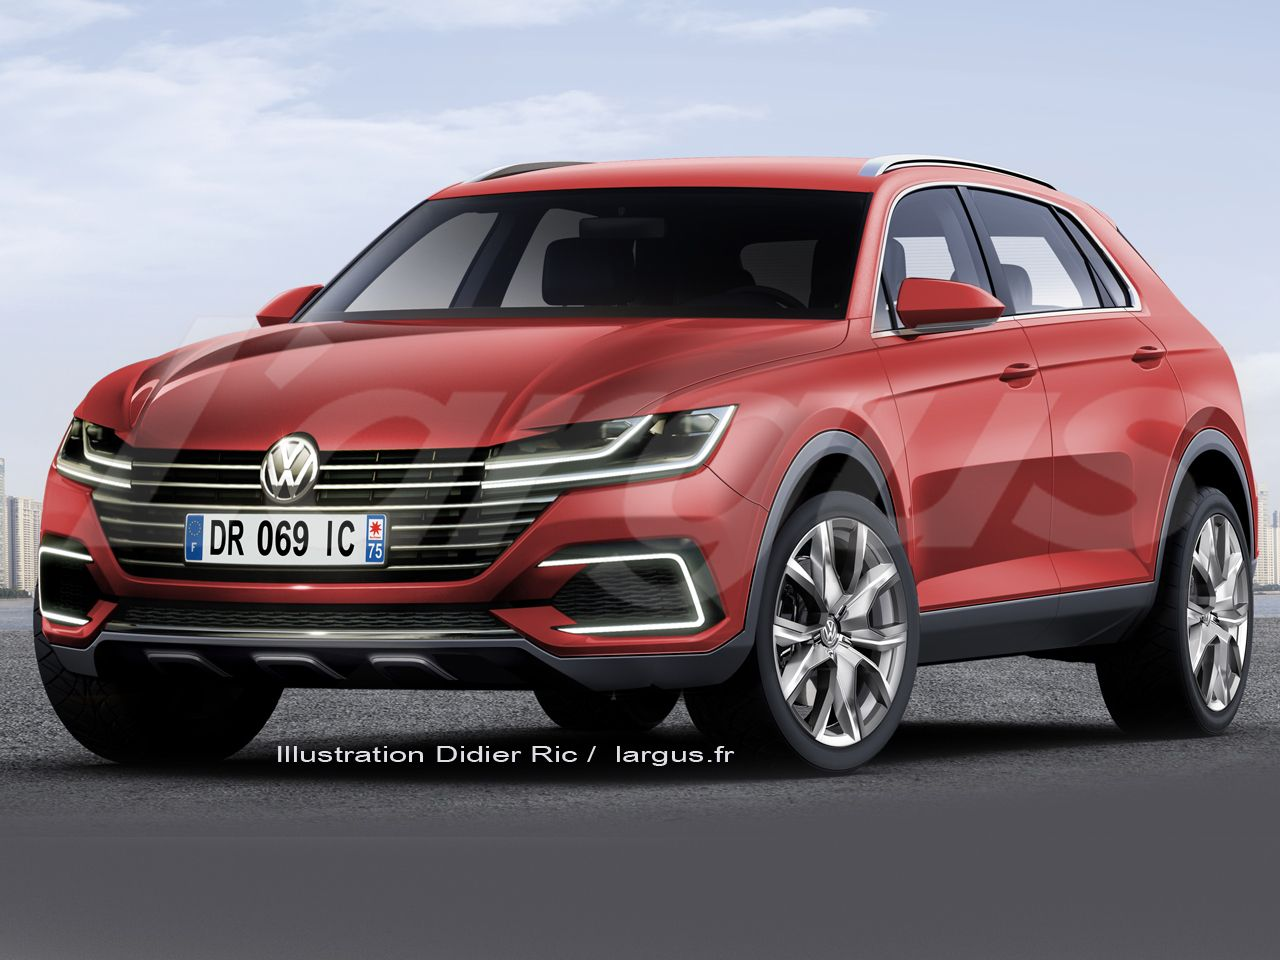 2016 VW Tiguan inspired by Sport Coupe Concept GTE